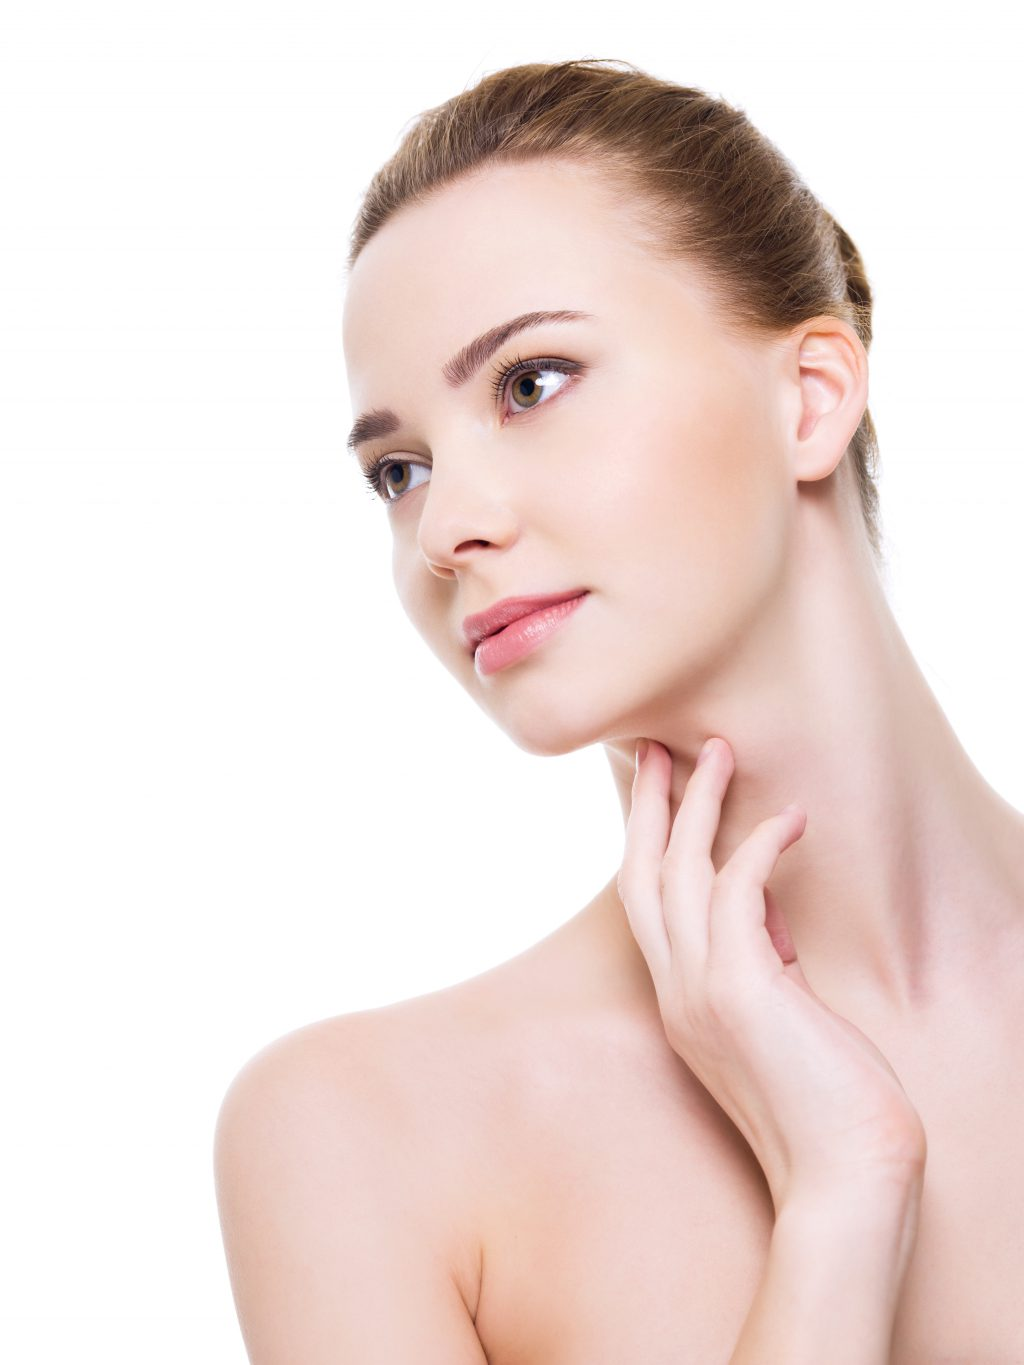 Jawline Slimming | Bruxism | Anti-Wrinkle Injections